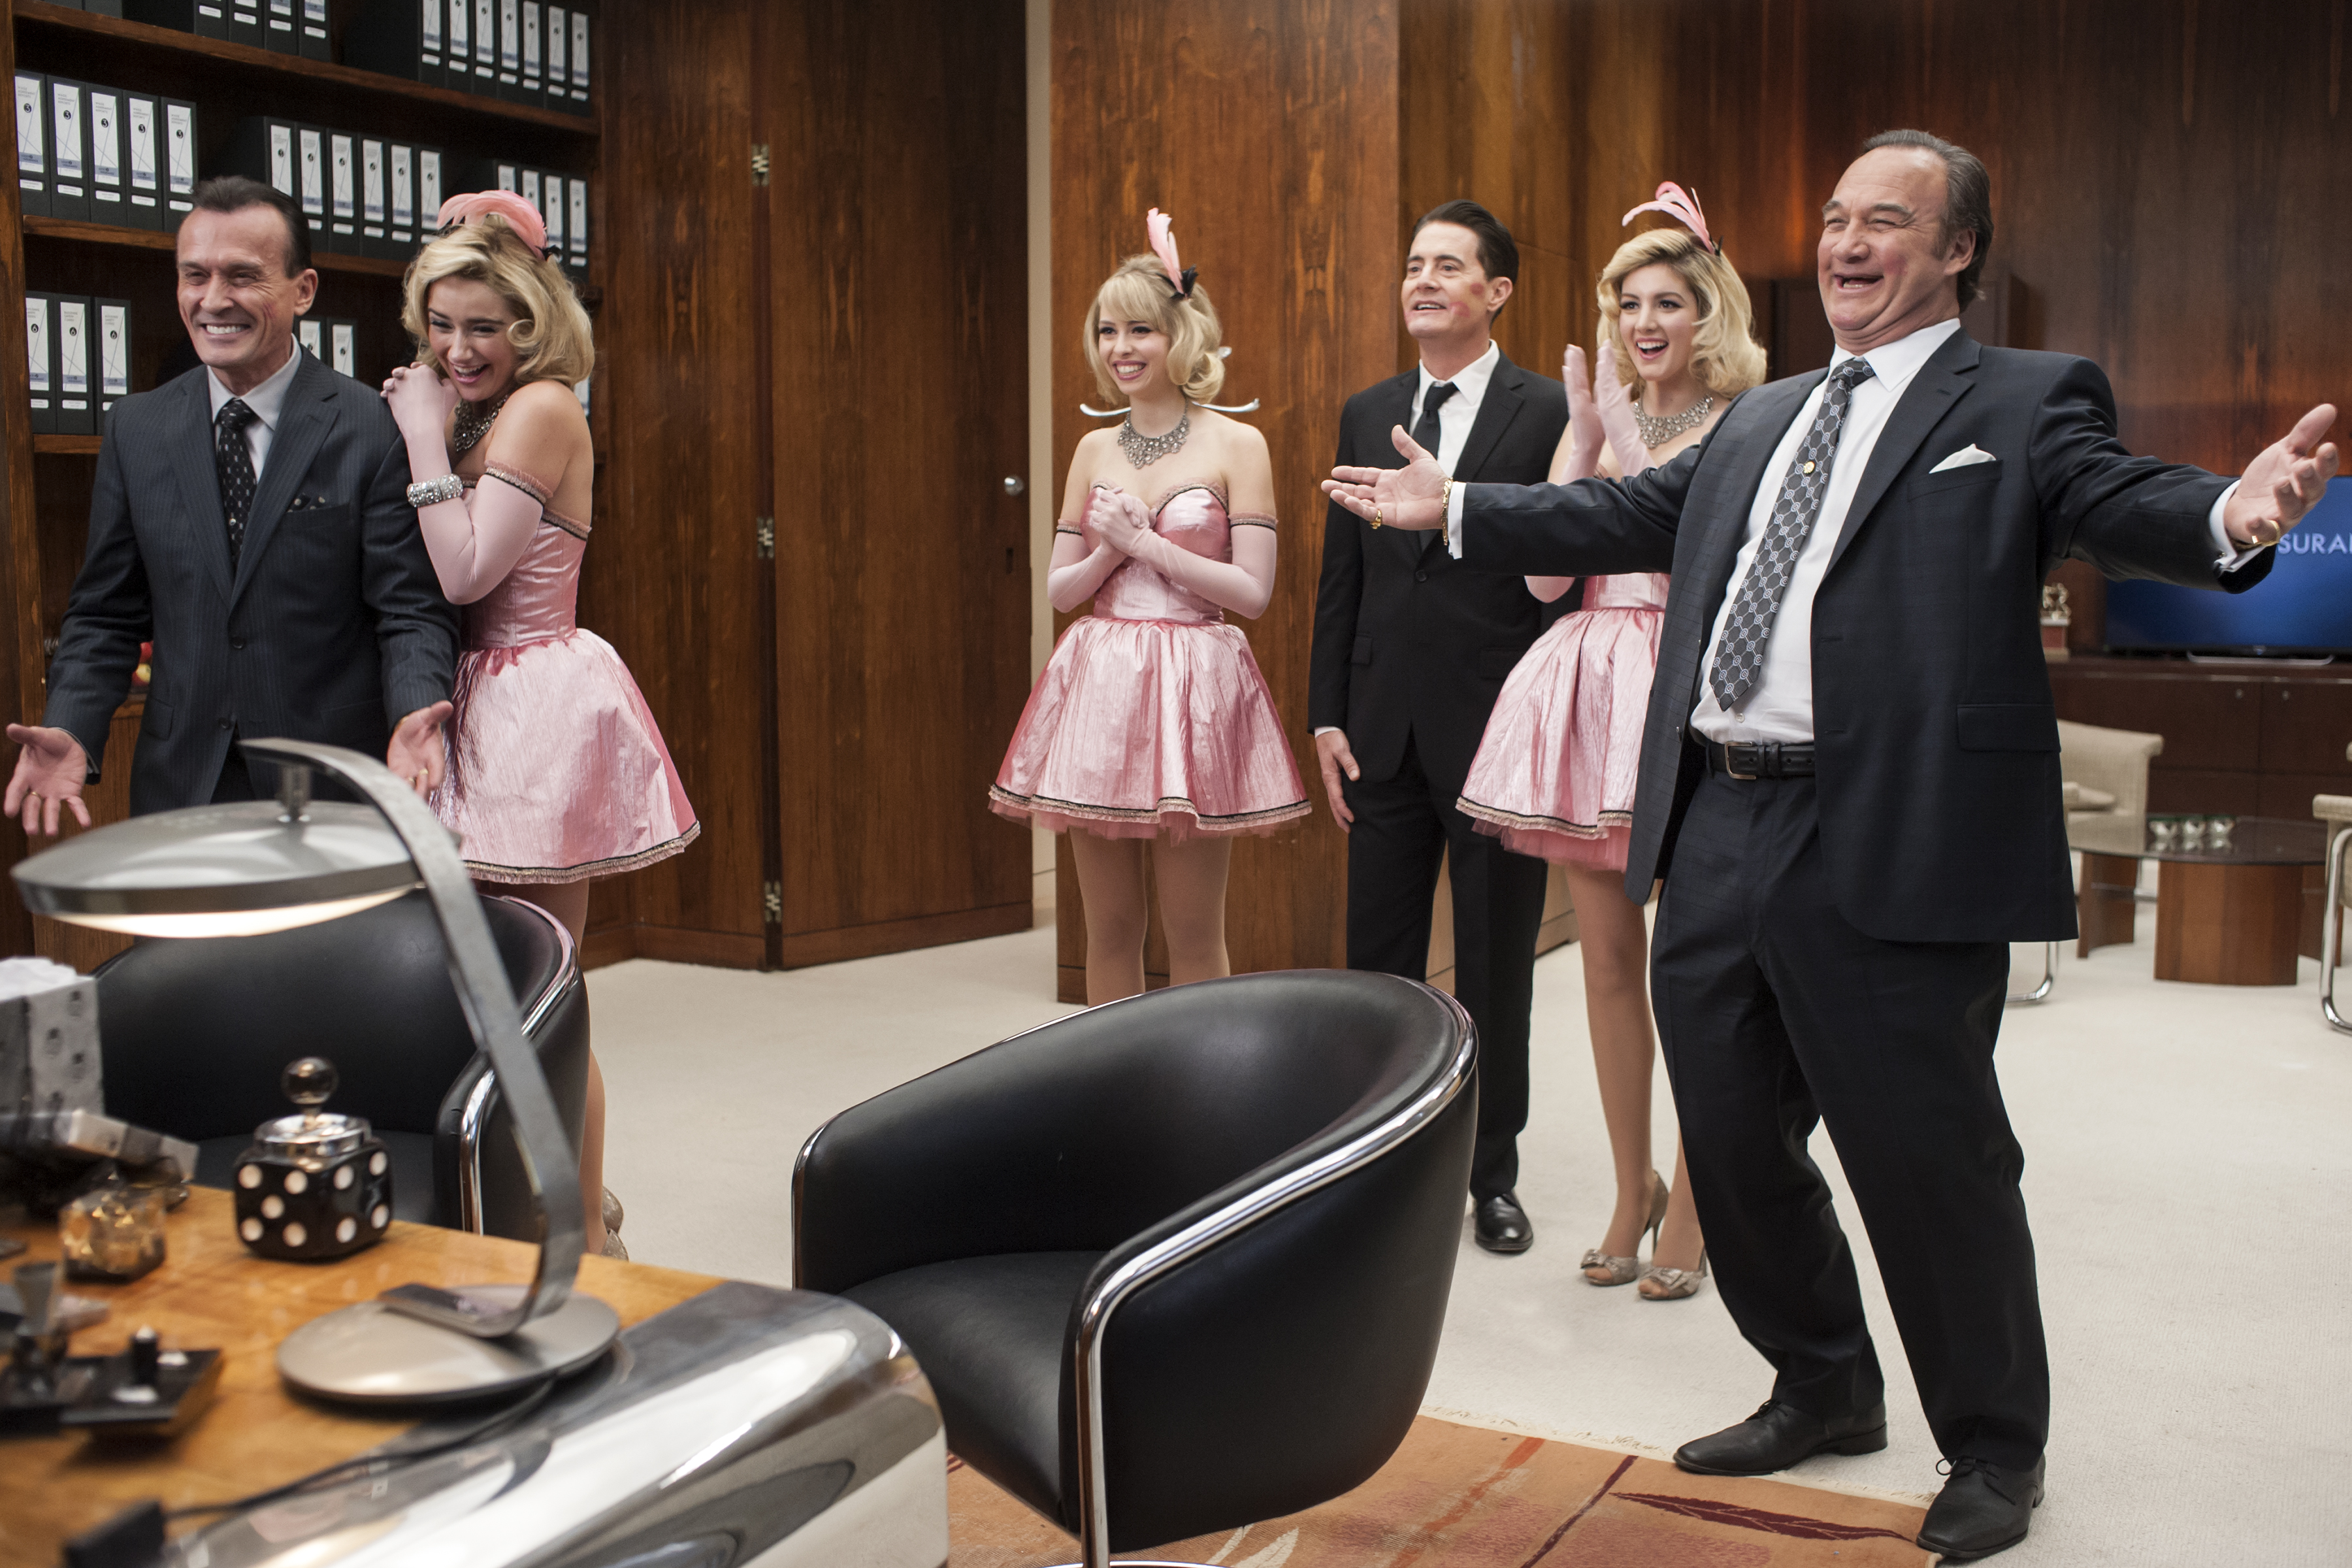 rr 15659 r Recapping Twin Peaks: The Return: Part 13